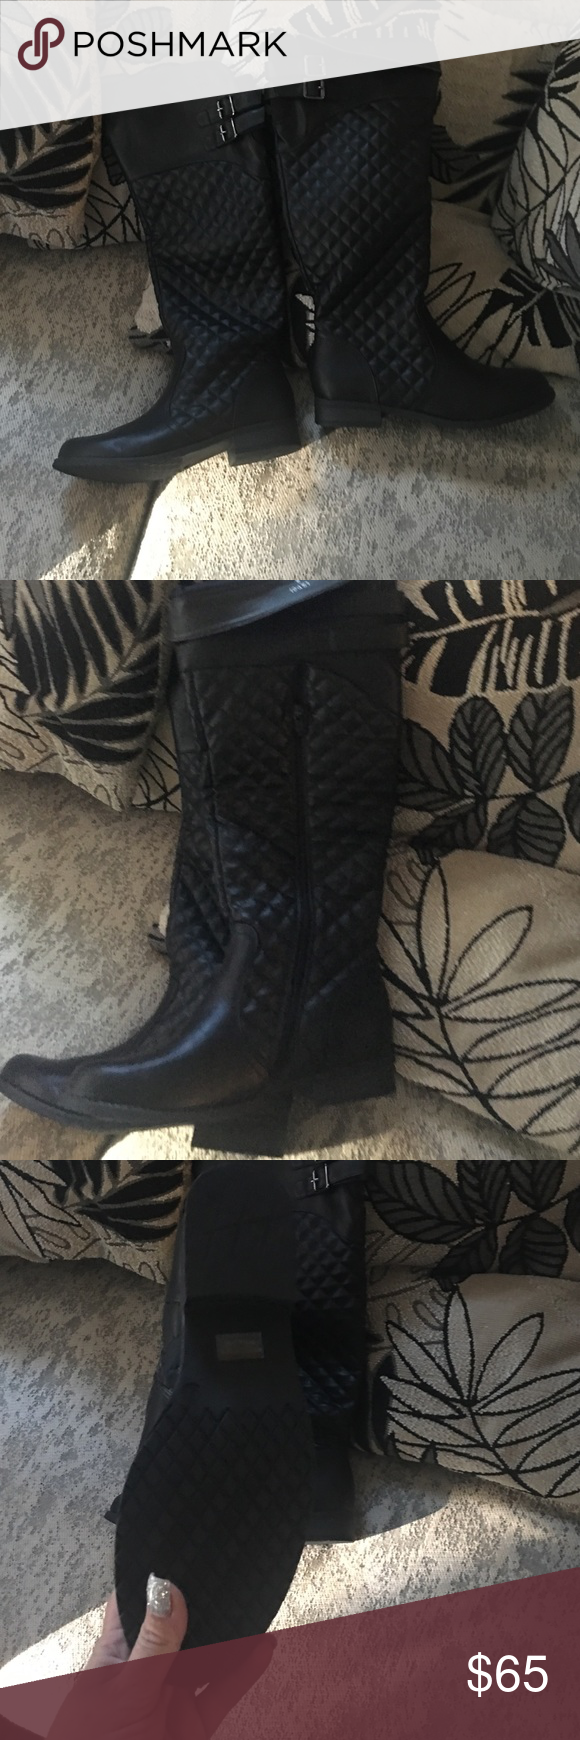 Woman's riding boots New size 9 Shoes Over the Knee Boots